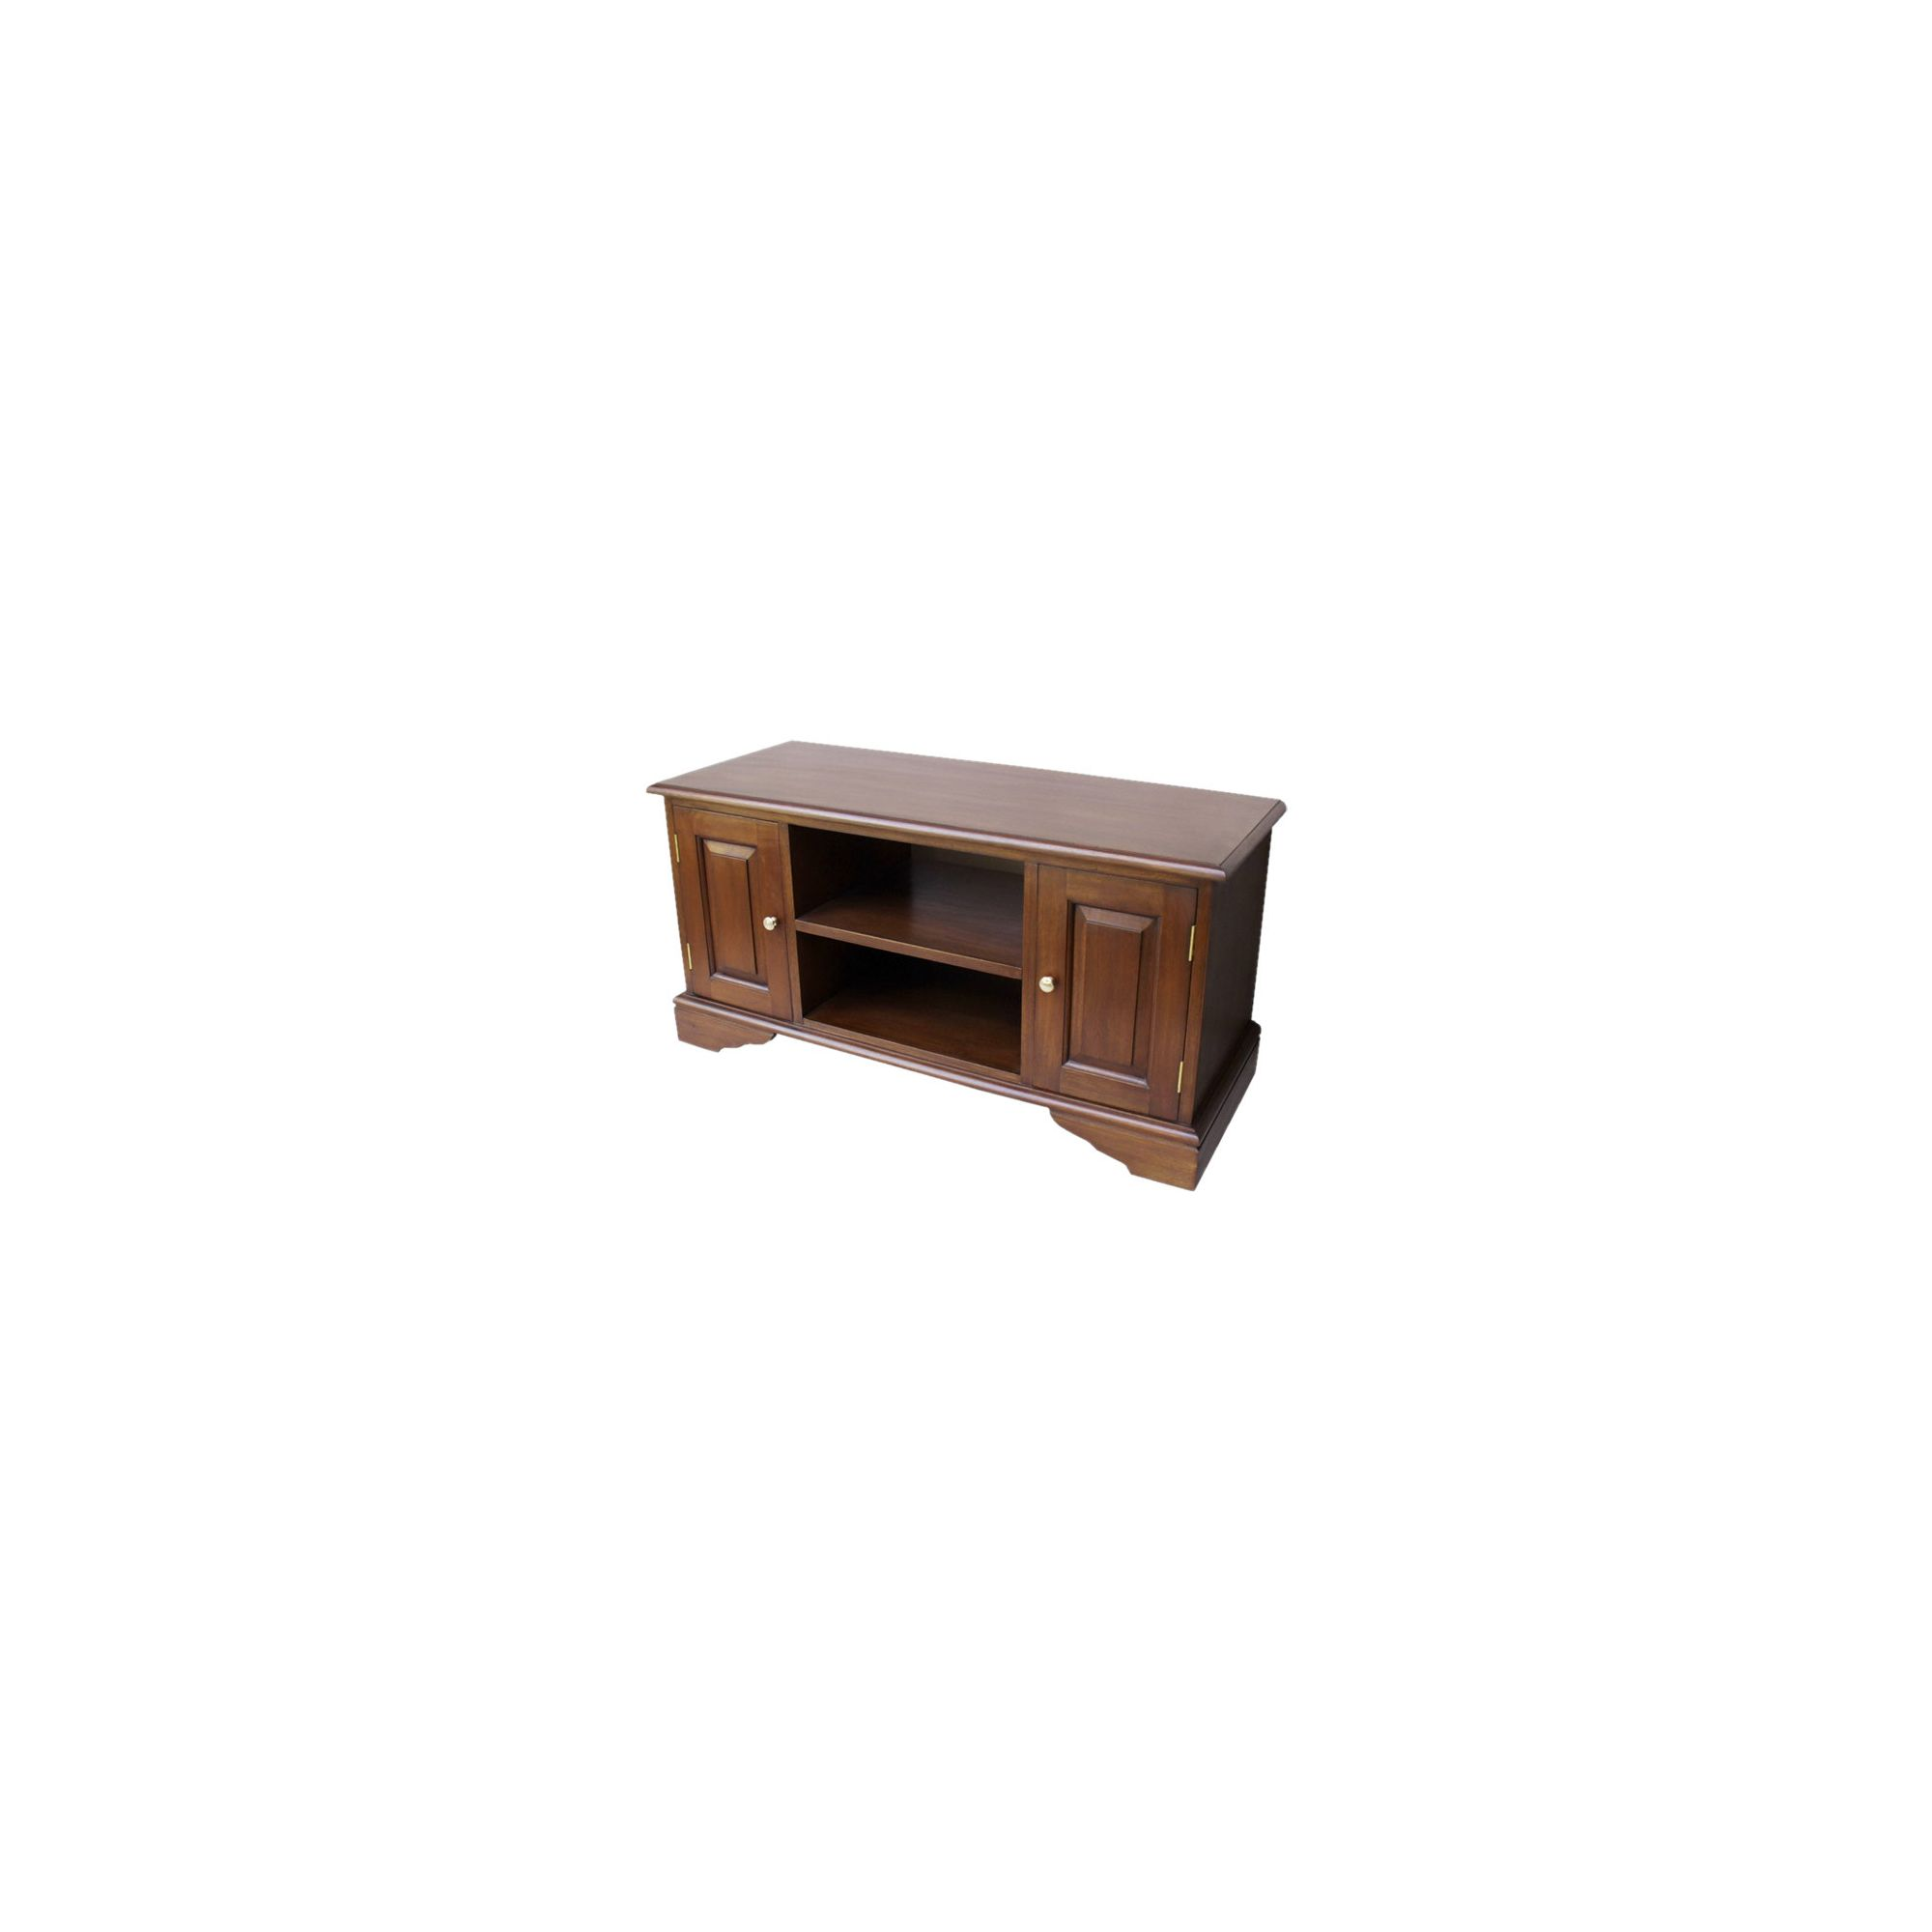 Lock stock and barrel Mahogany Widescreen TV Stand in Mahogany at Tesco Direct